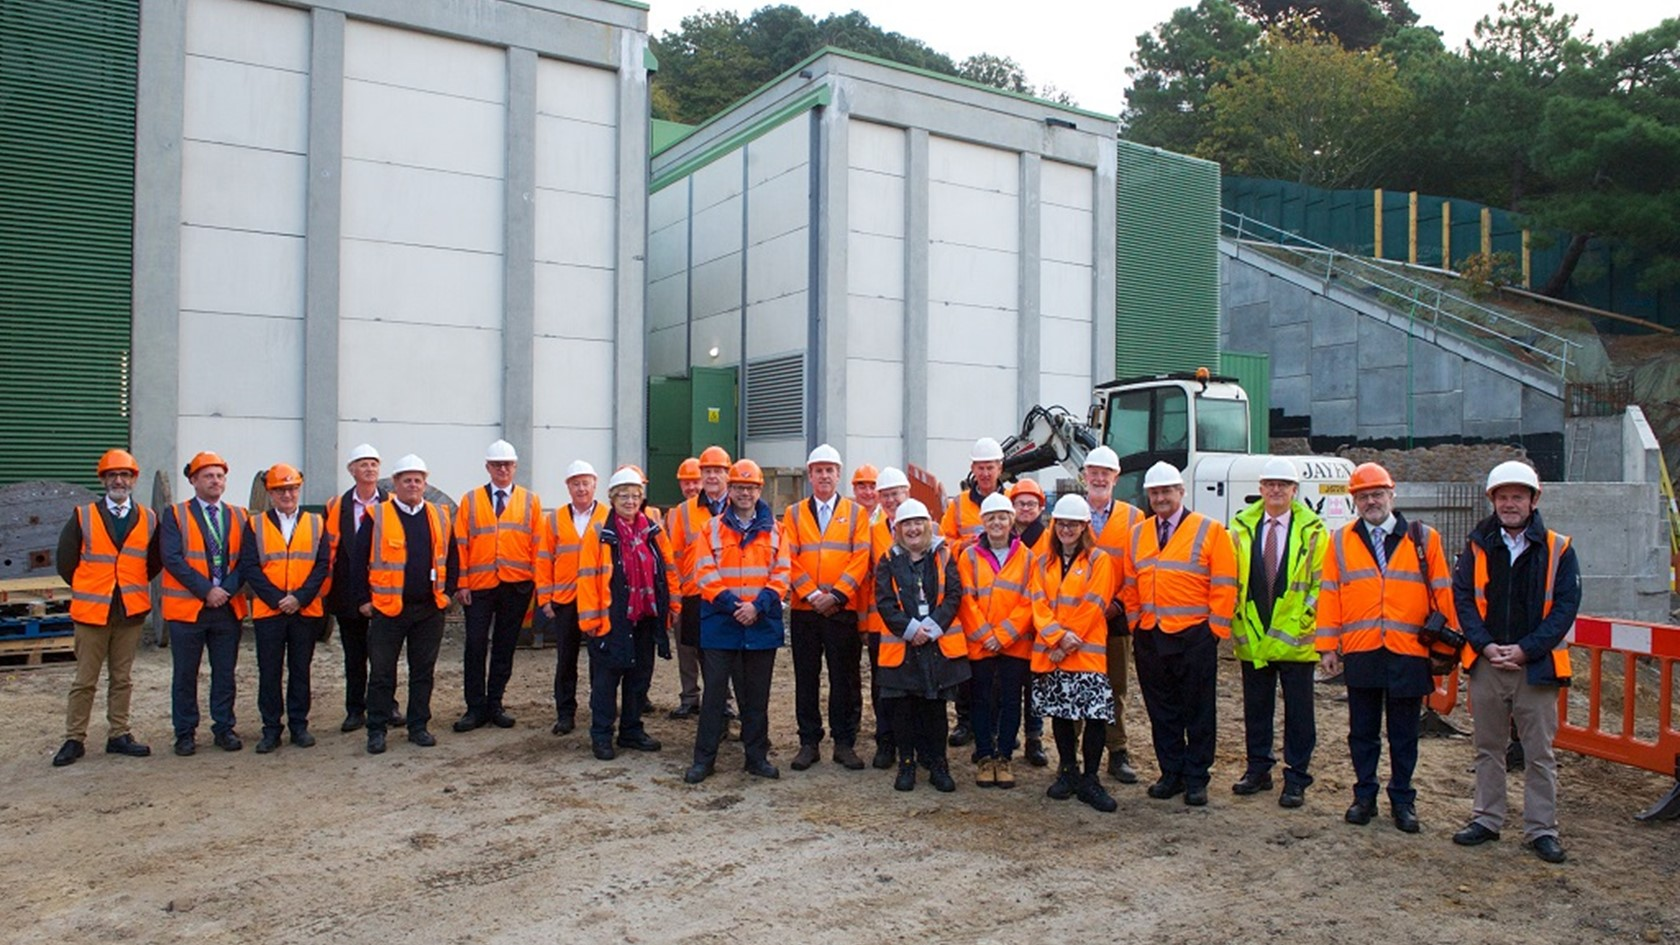 states-visit-to-st-helier-west-substation.jpg